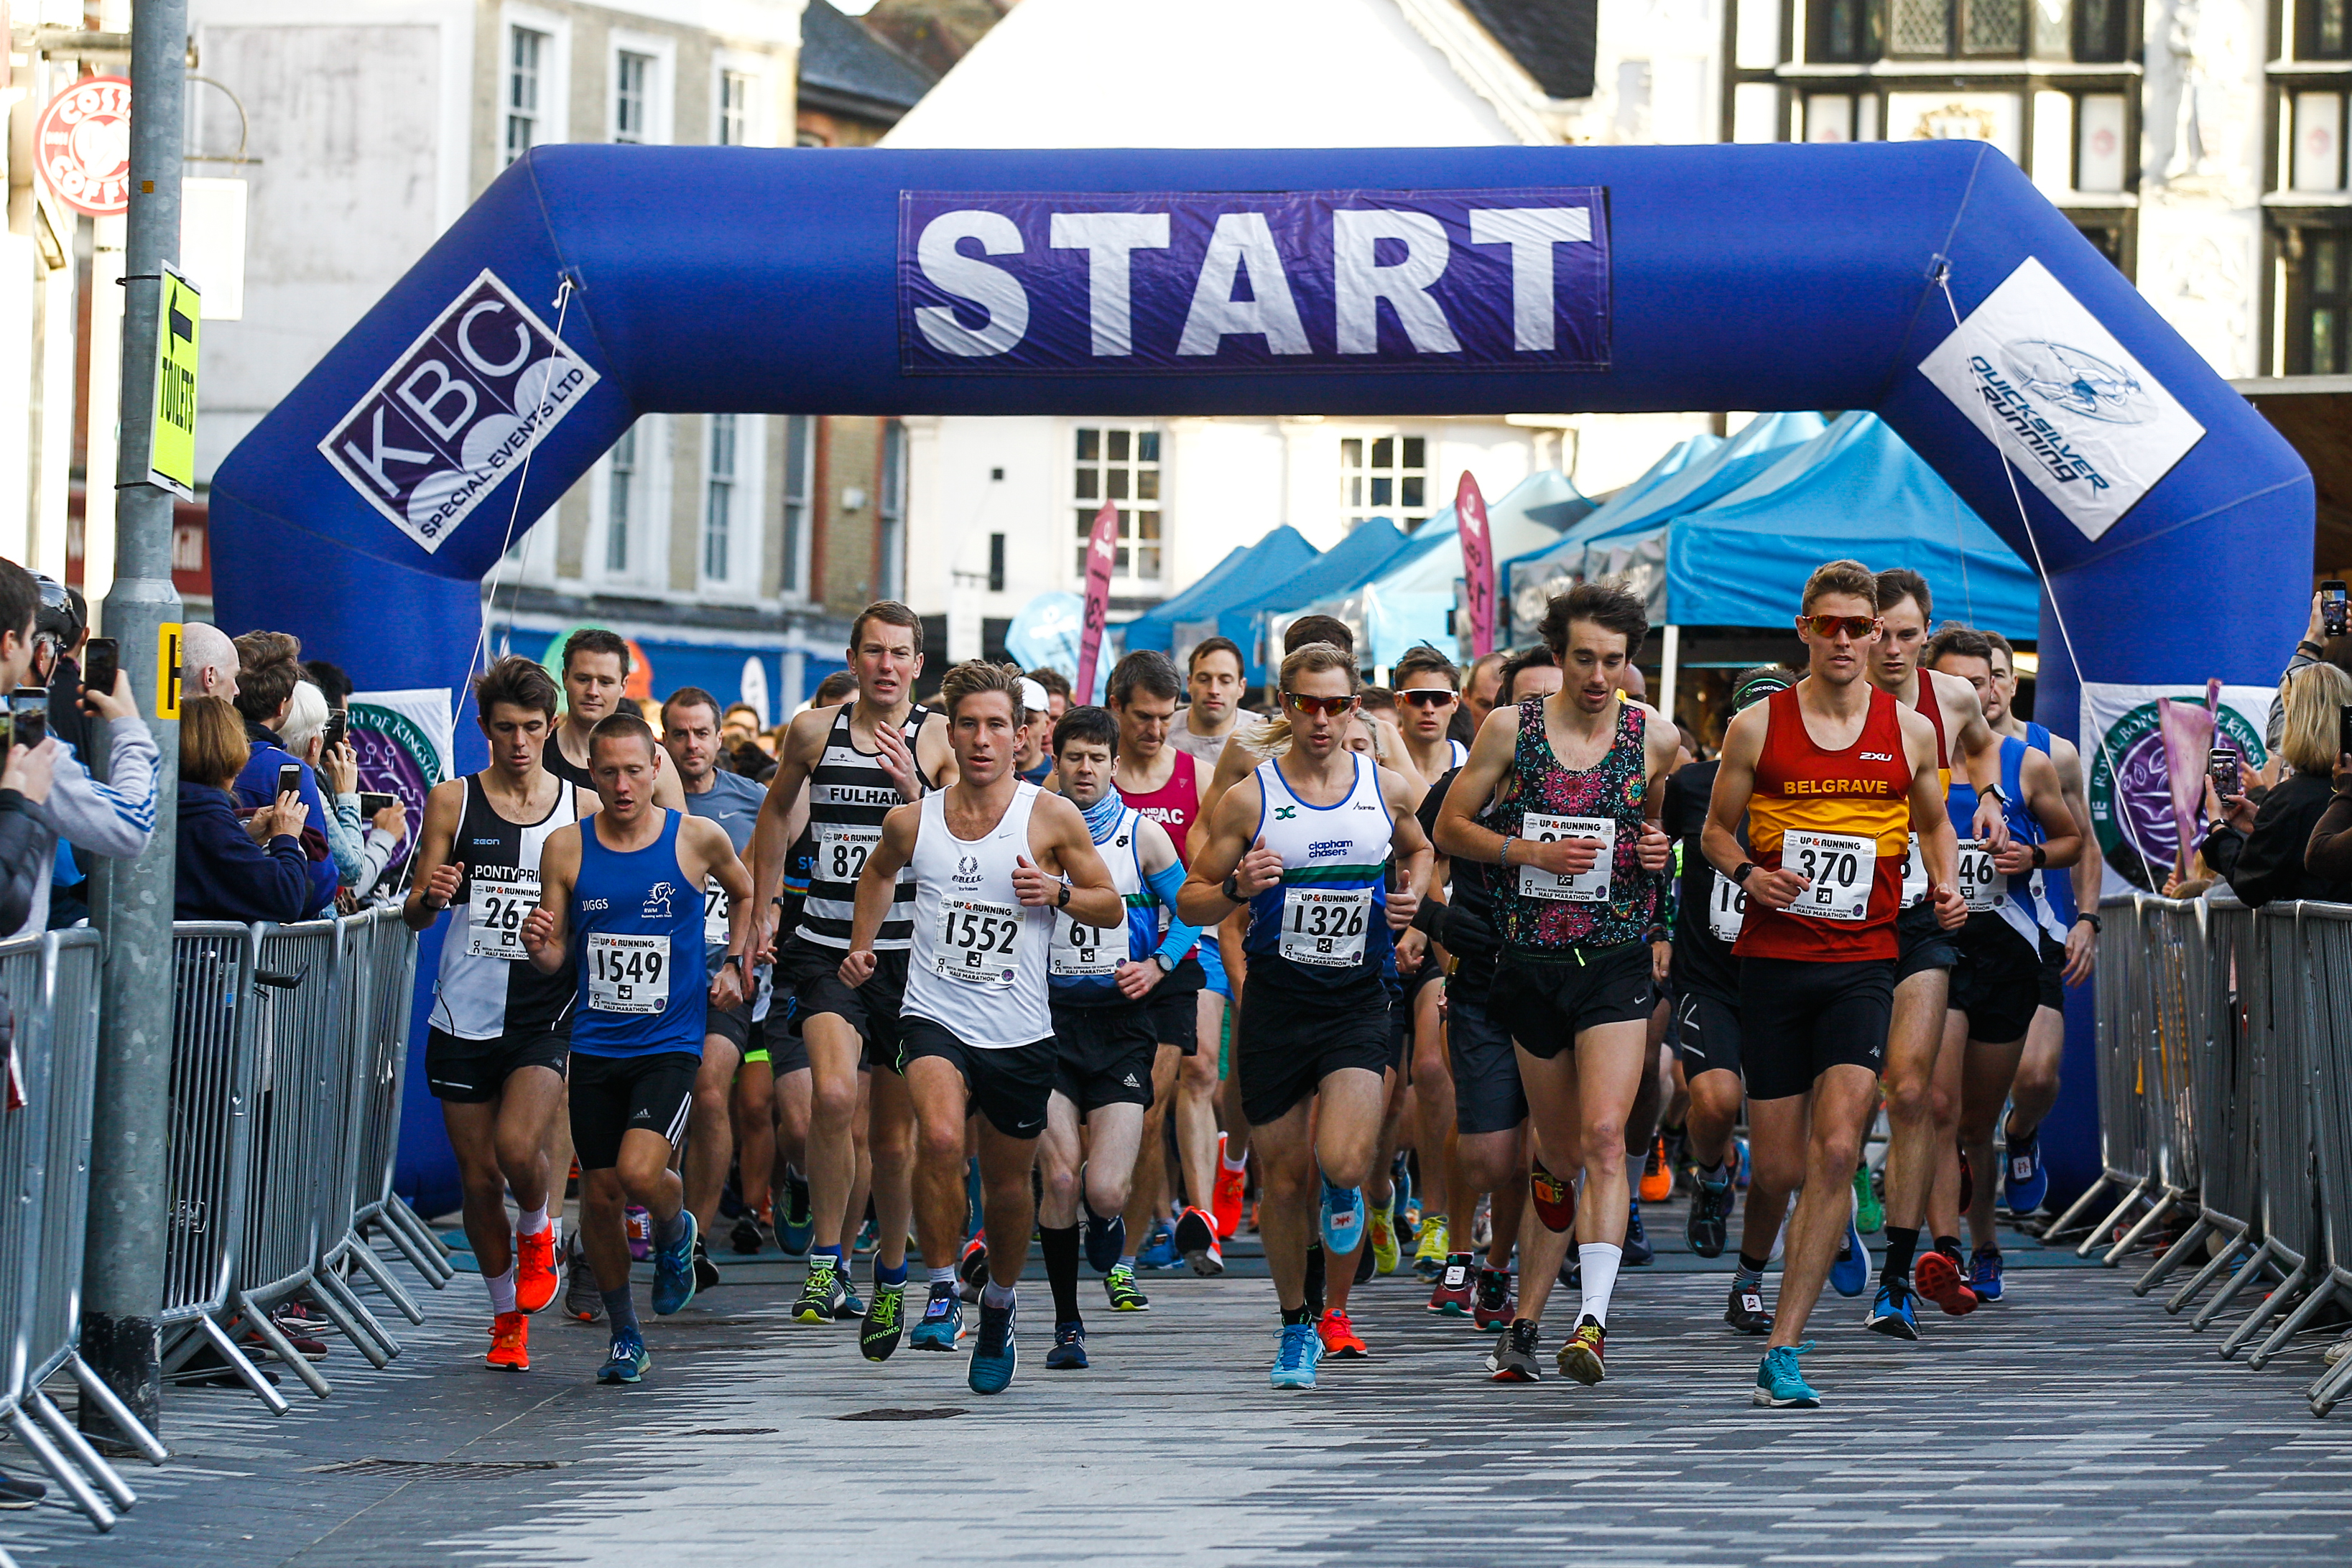 Running Events Near Me - 2019/20 UK Events | Let's Do This